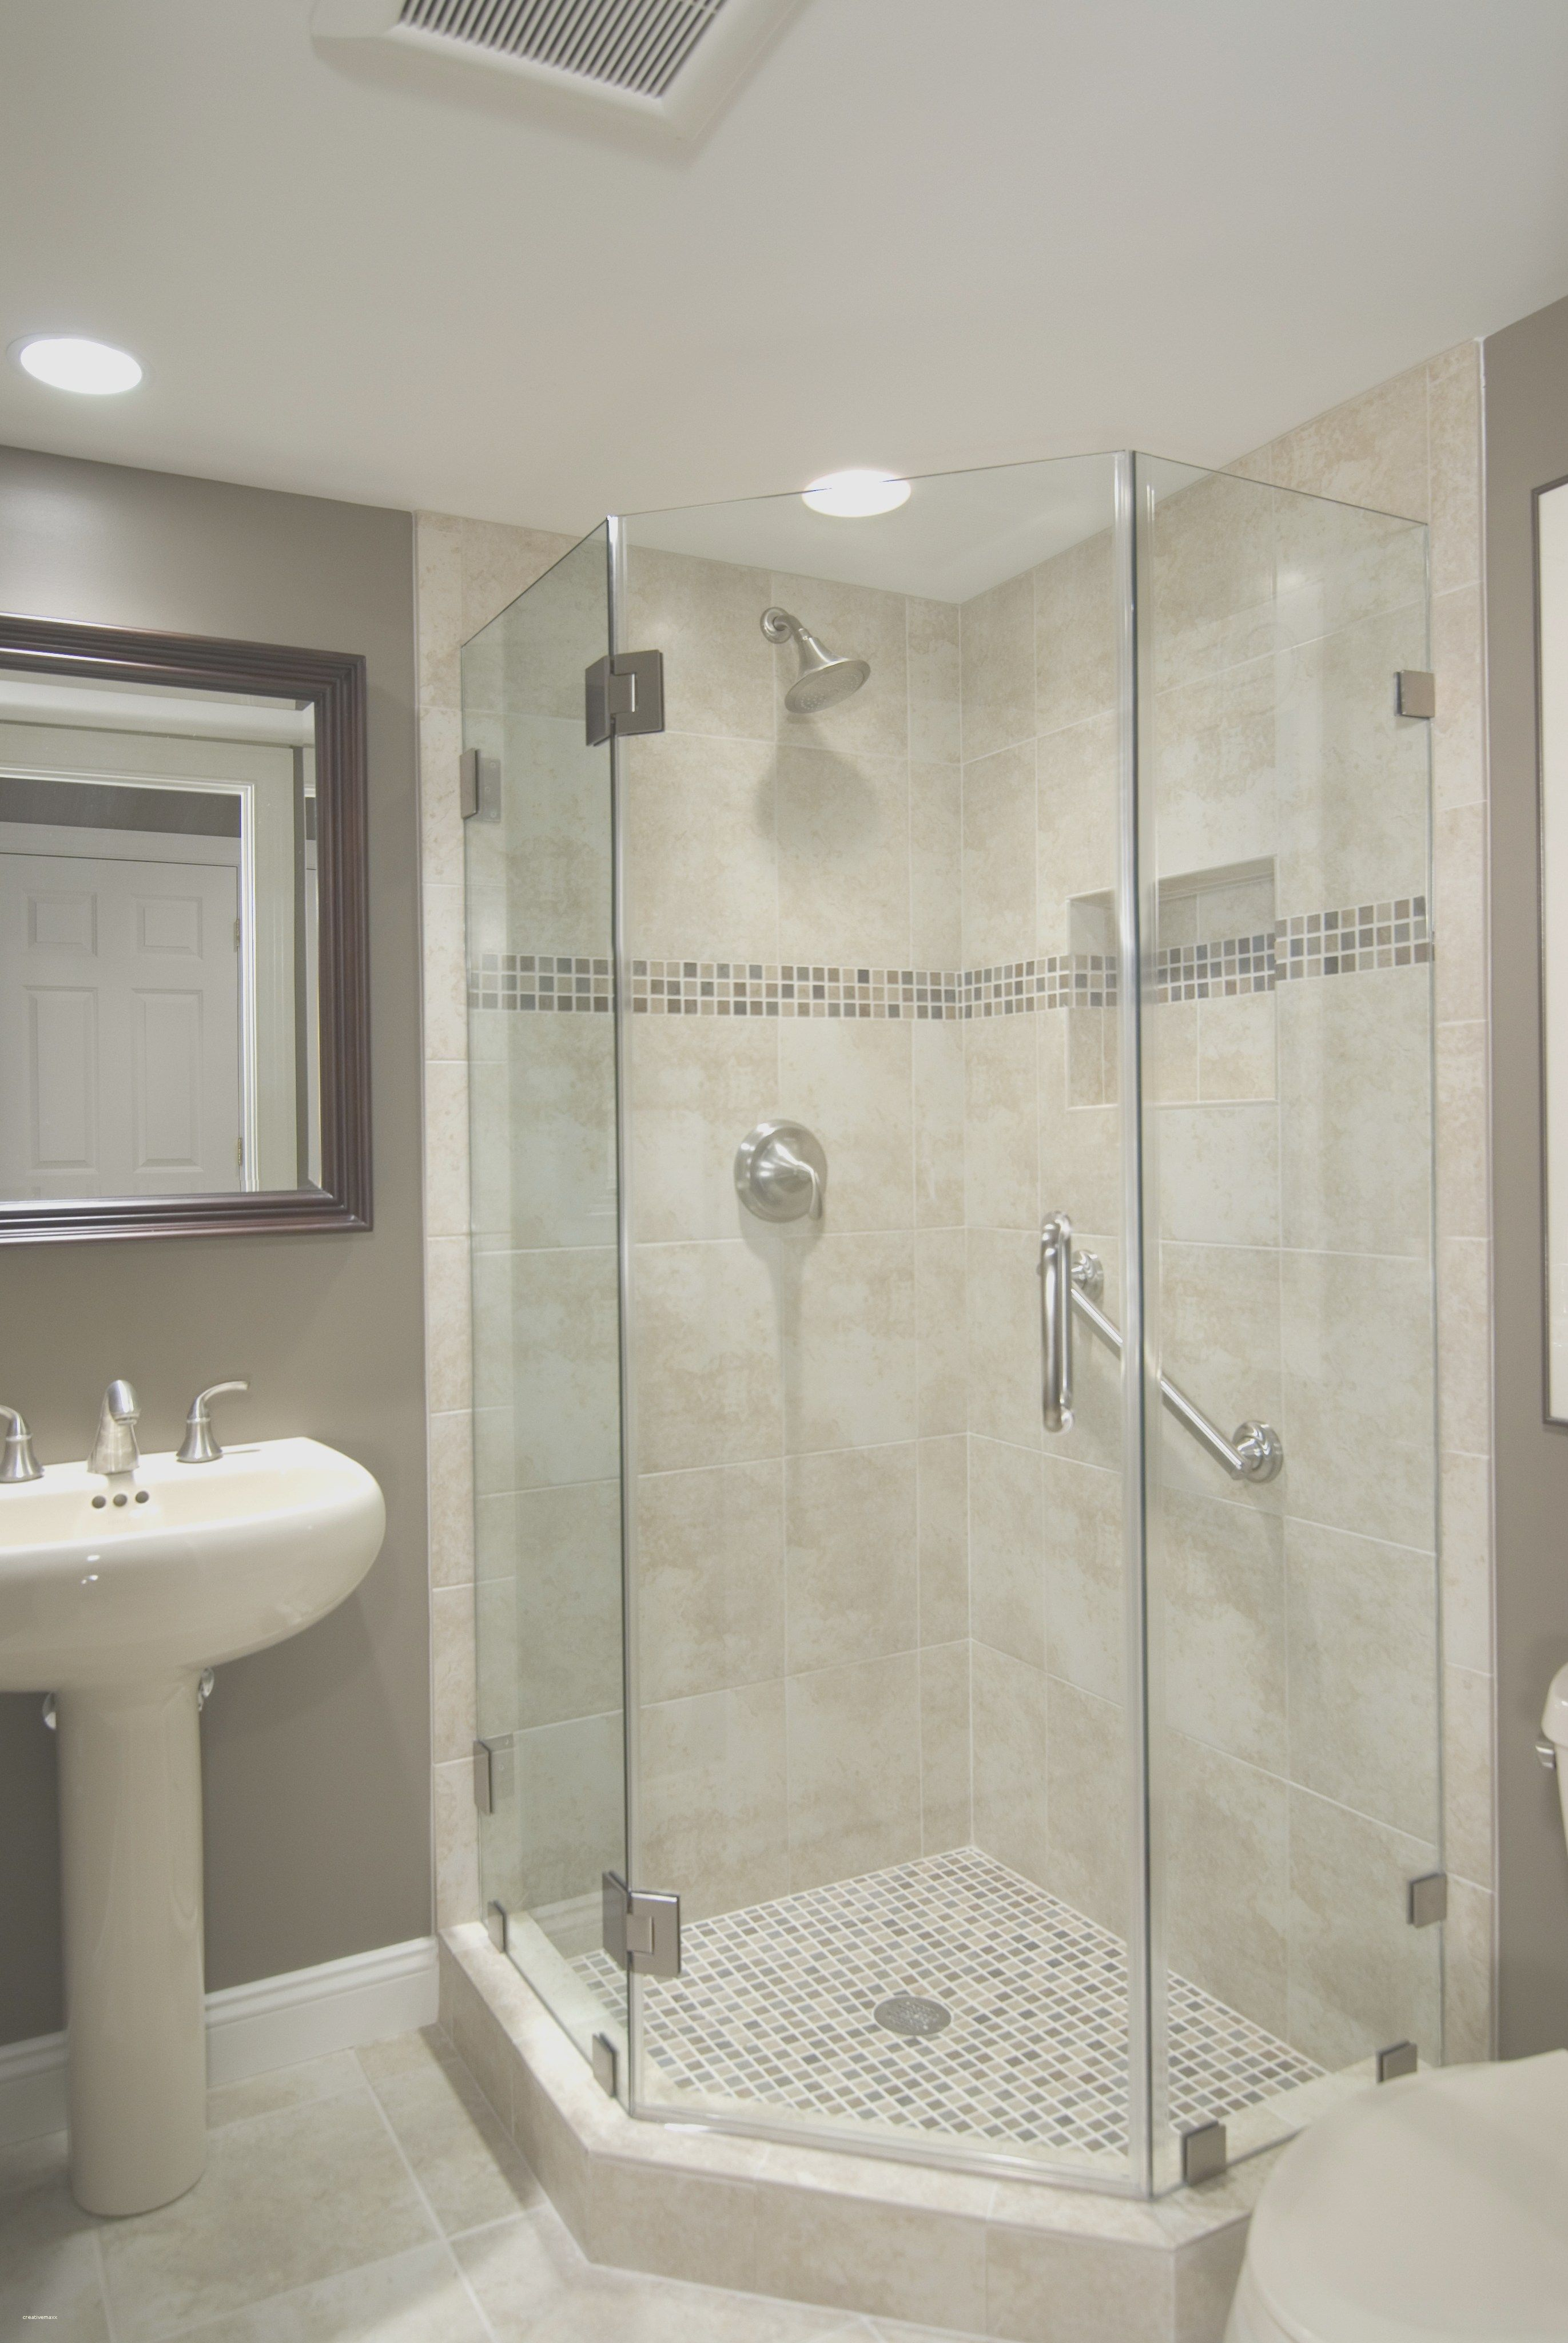 Pin By Judy Collins On Dream Homes Bathroom Layout Basement